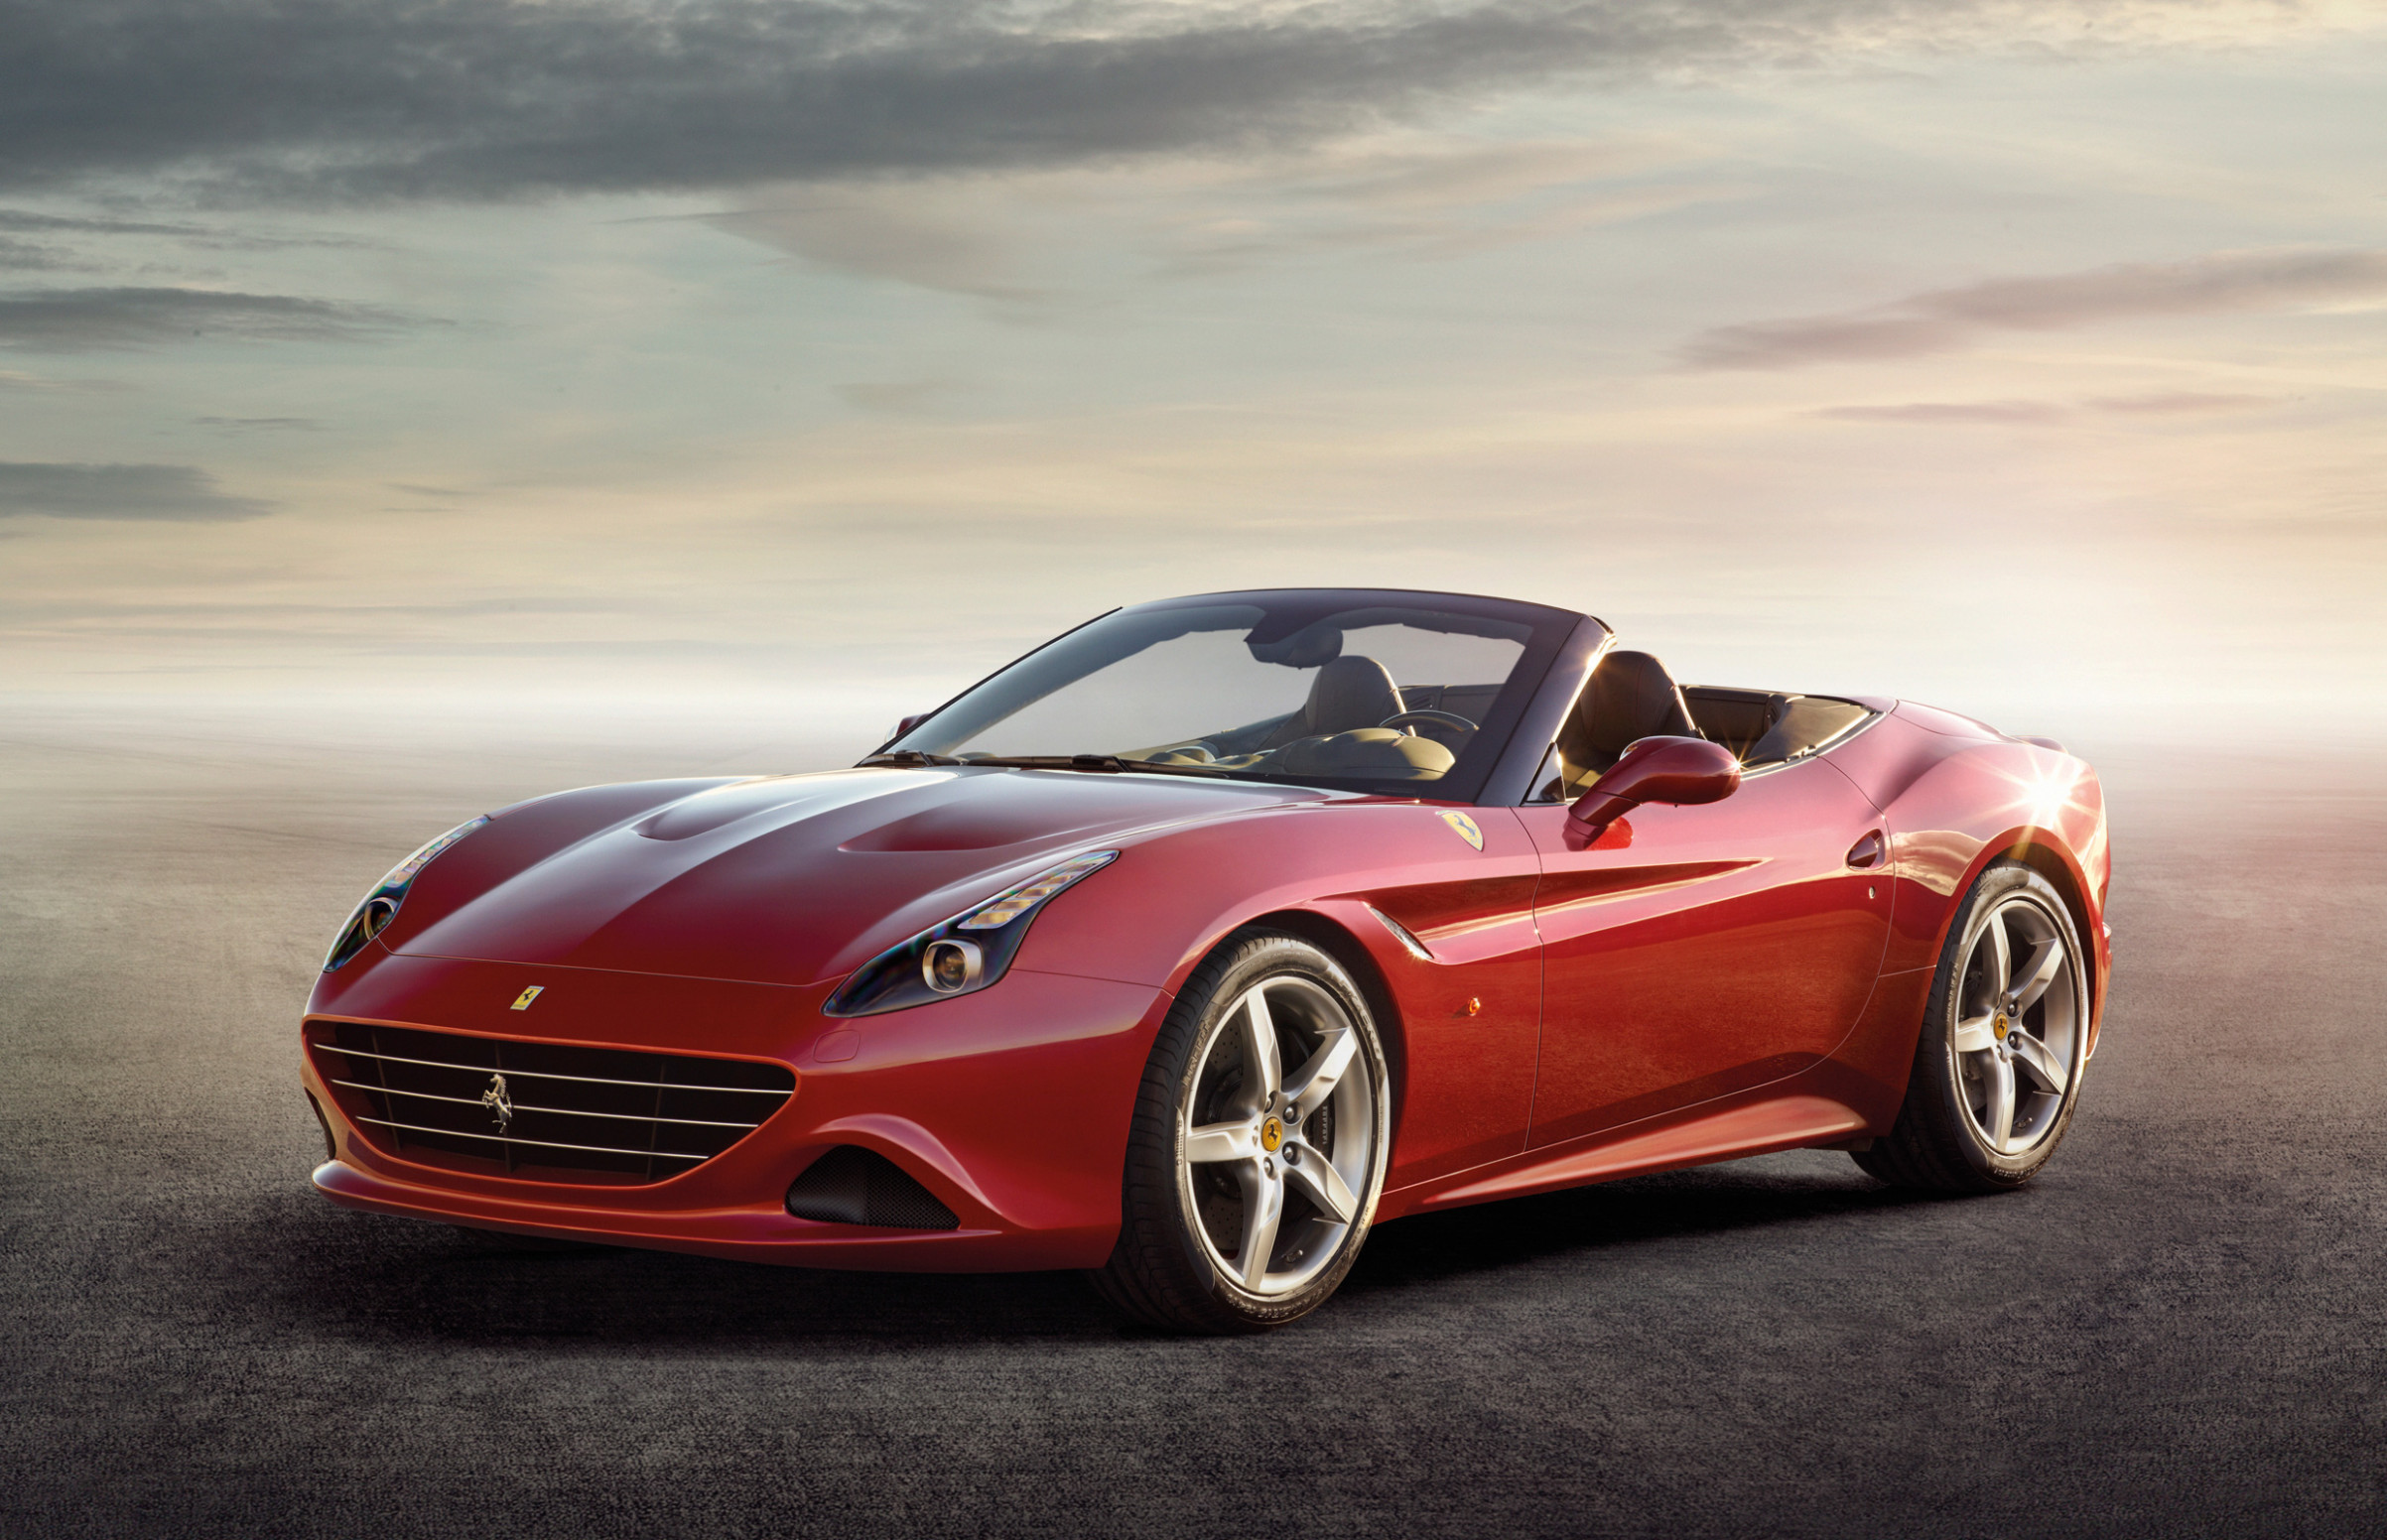 Ferrari California 7 - View Specs, Prices, Photos & More | Driving